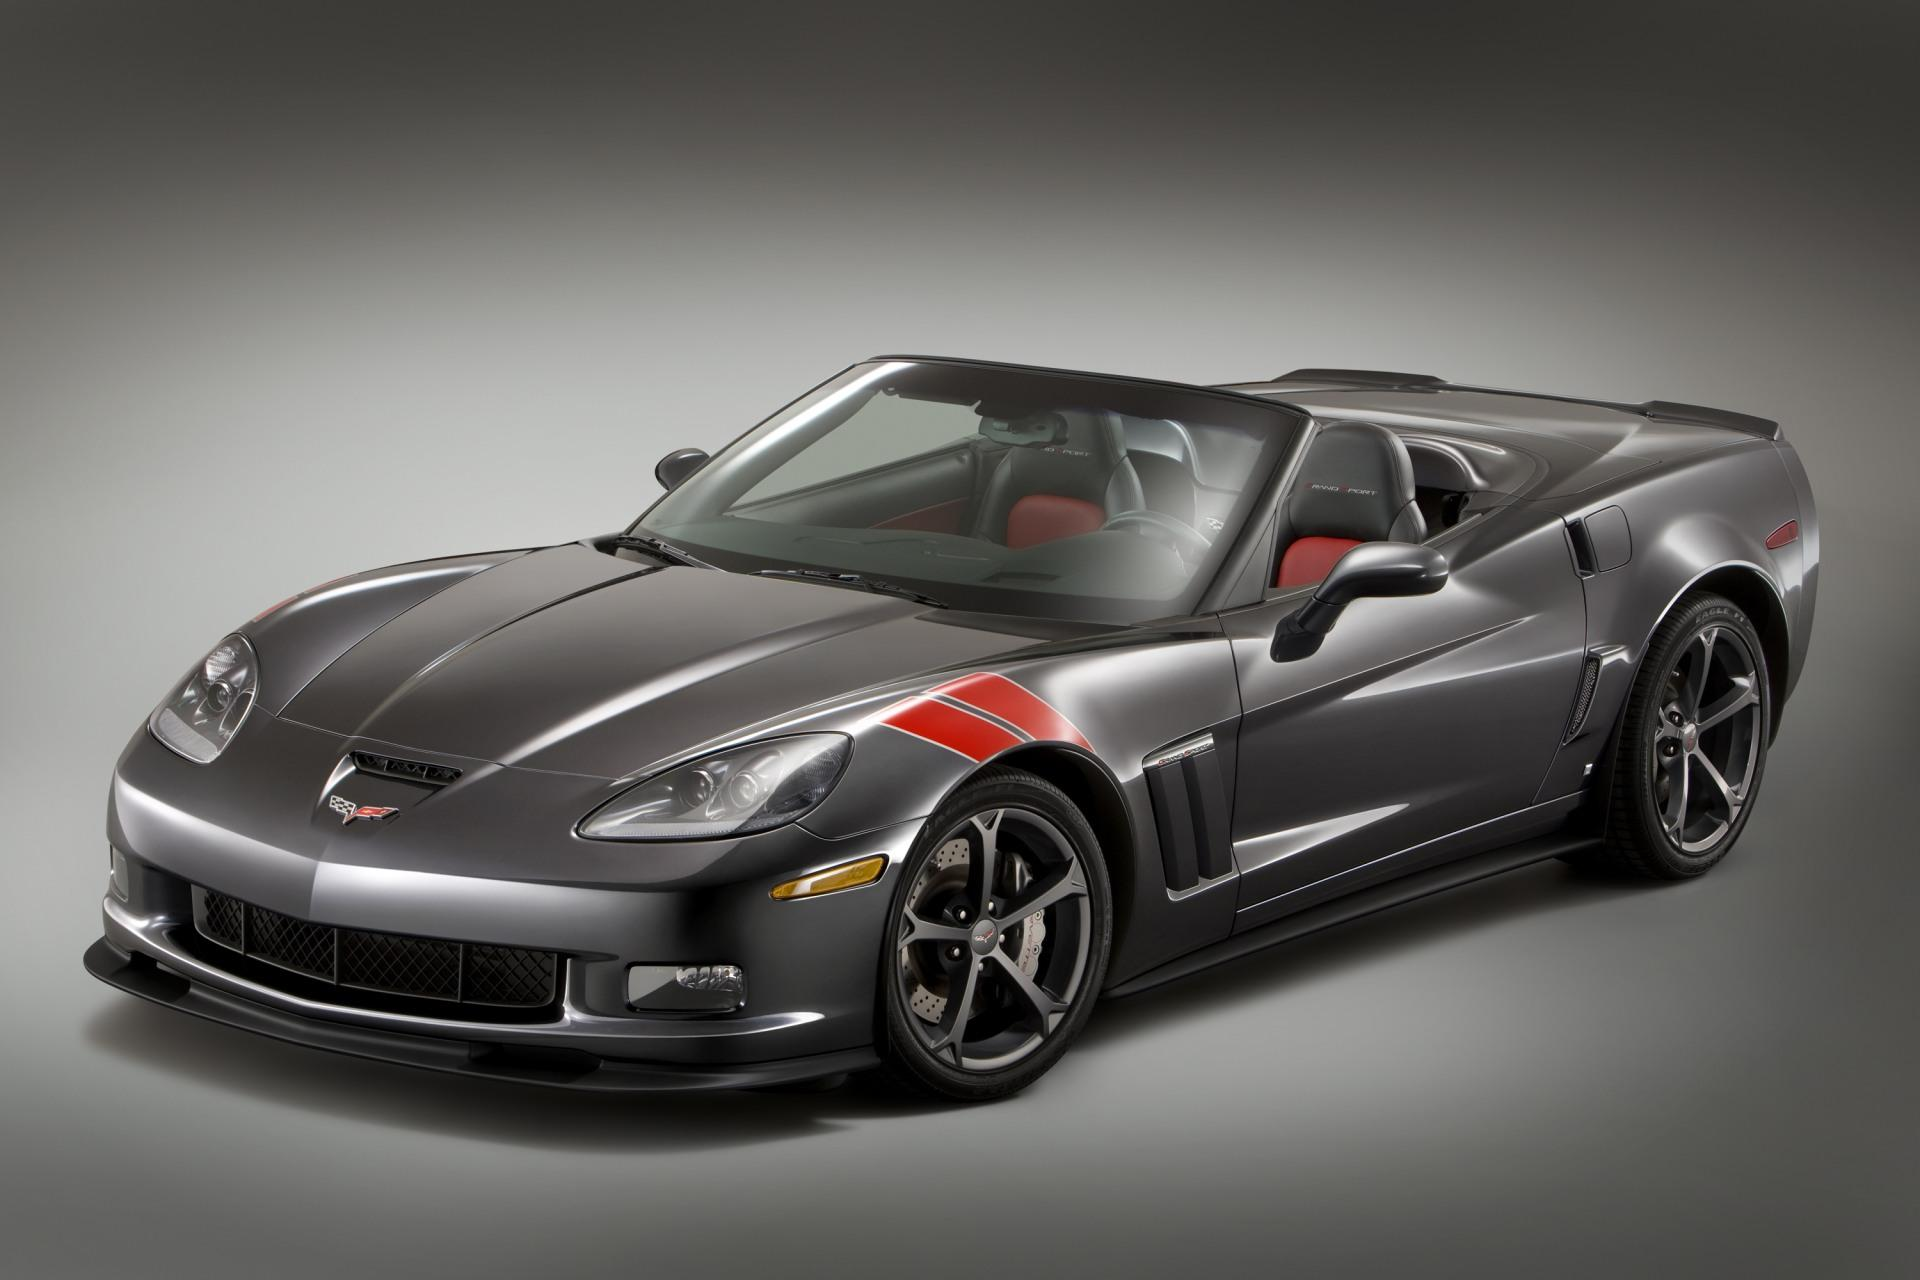 2010 Chevrolet Corvette Grand Sport Heritage Package News and Information